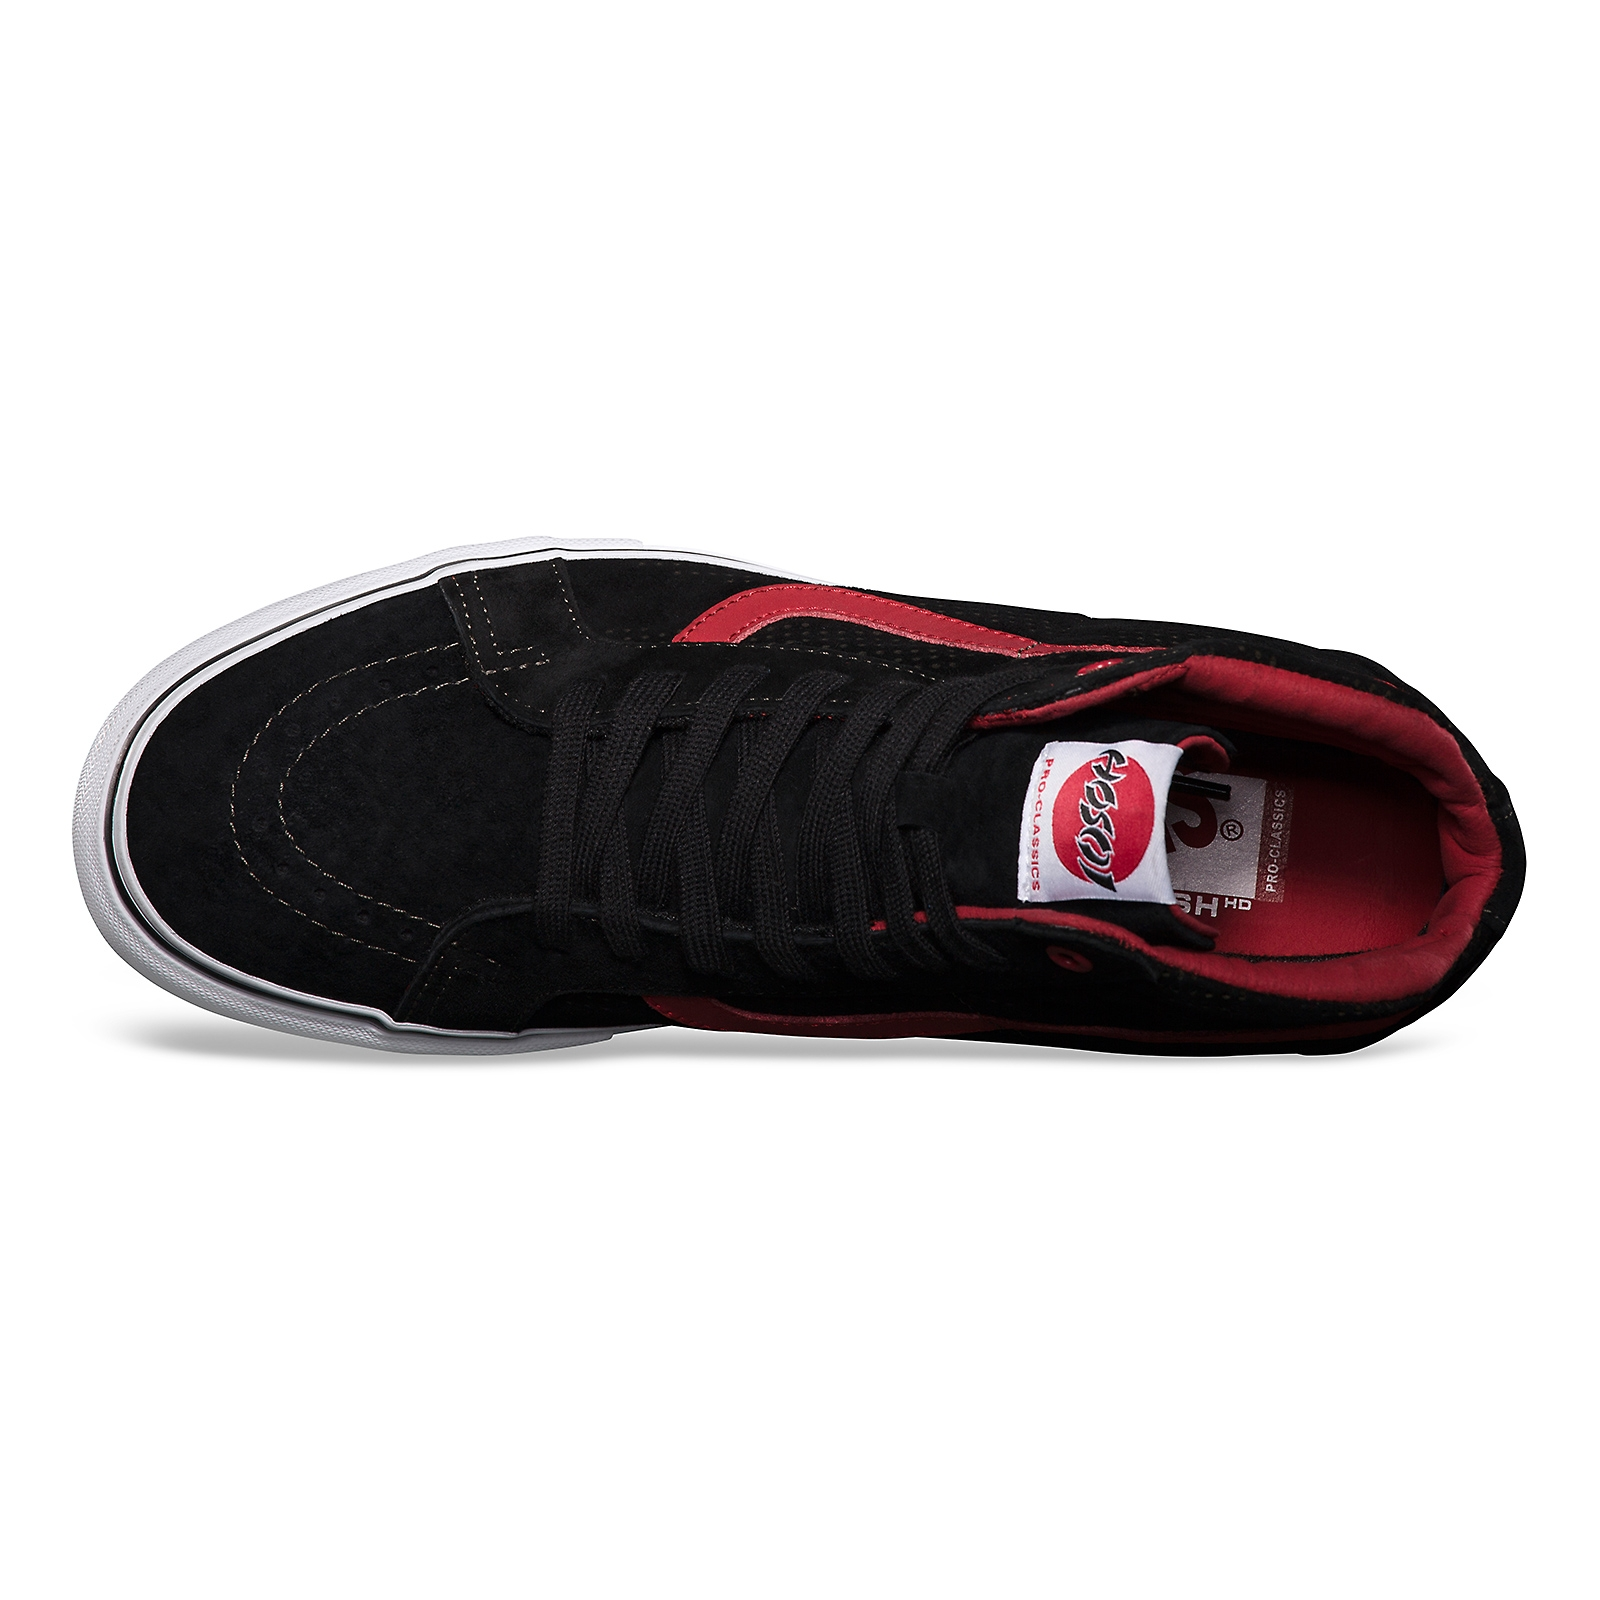 005de5d5c1969a Vans Sk8-Hi Notchback Pro hosoi black white red